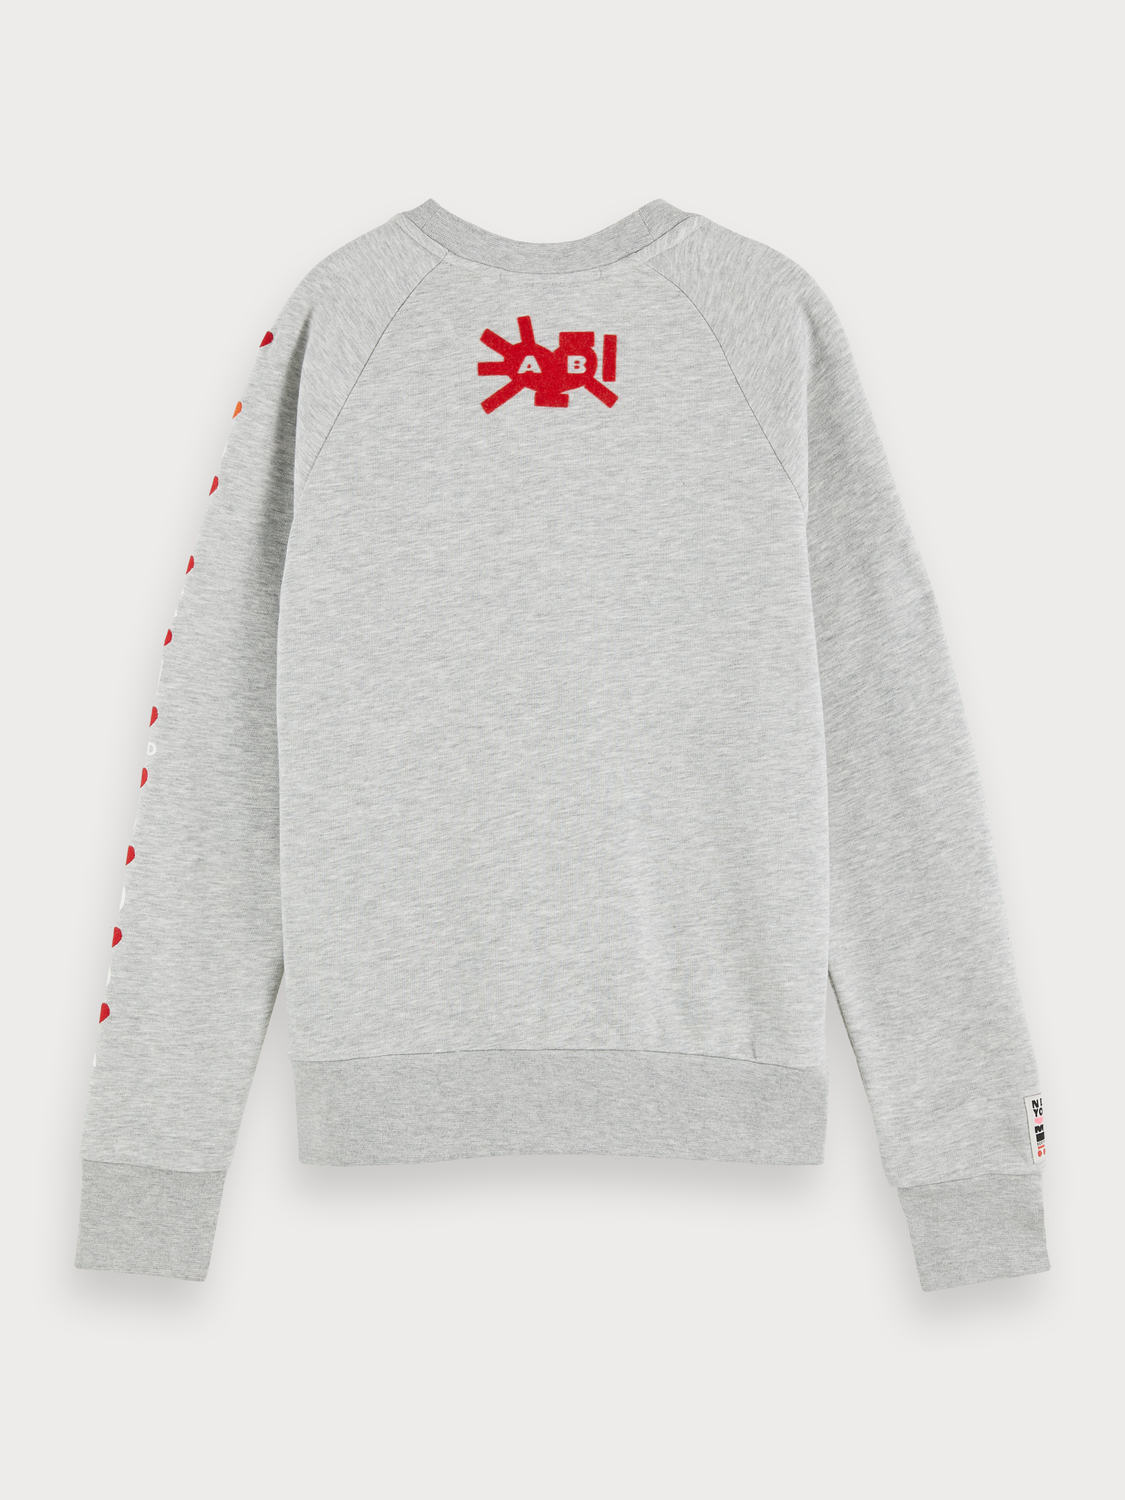 Women Crew Neck Artwork Sweater